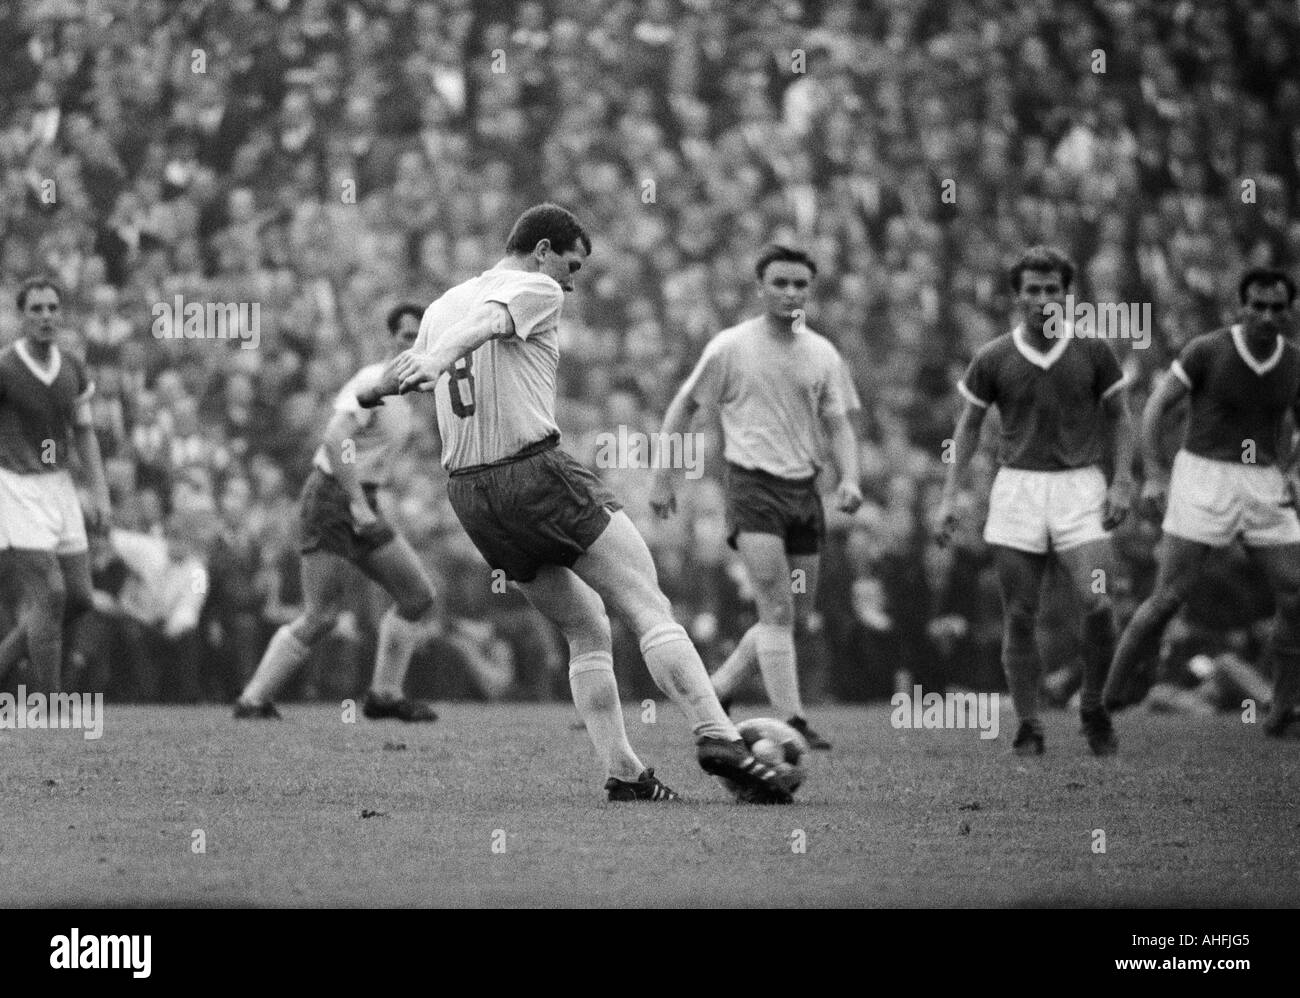 football, Bundesliga, 1966/1967, FC Schalke 04 versus Eintracht Brunswick 0:0, Stadium Glueckaufkampfbahn in Gelsenkirchen, Stock Photo